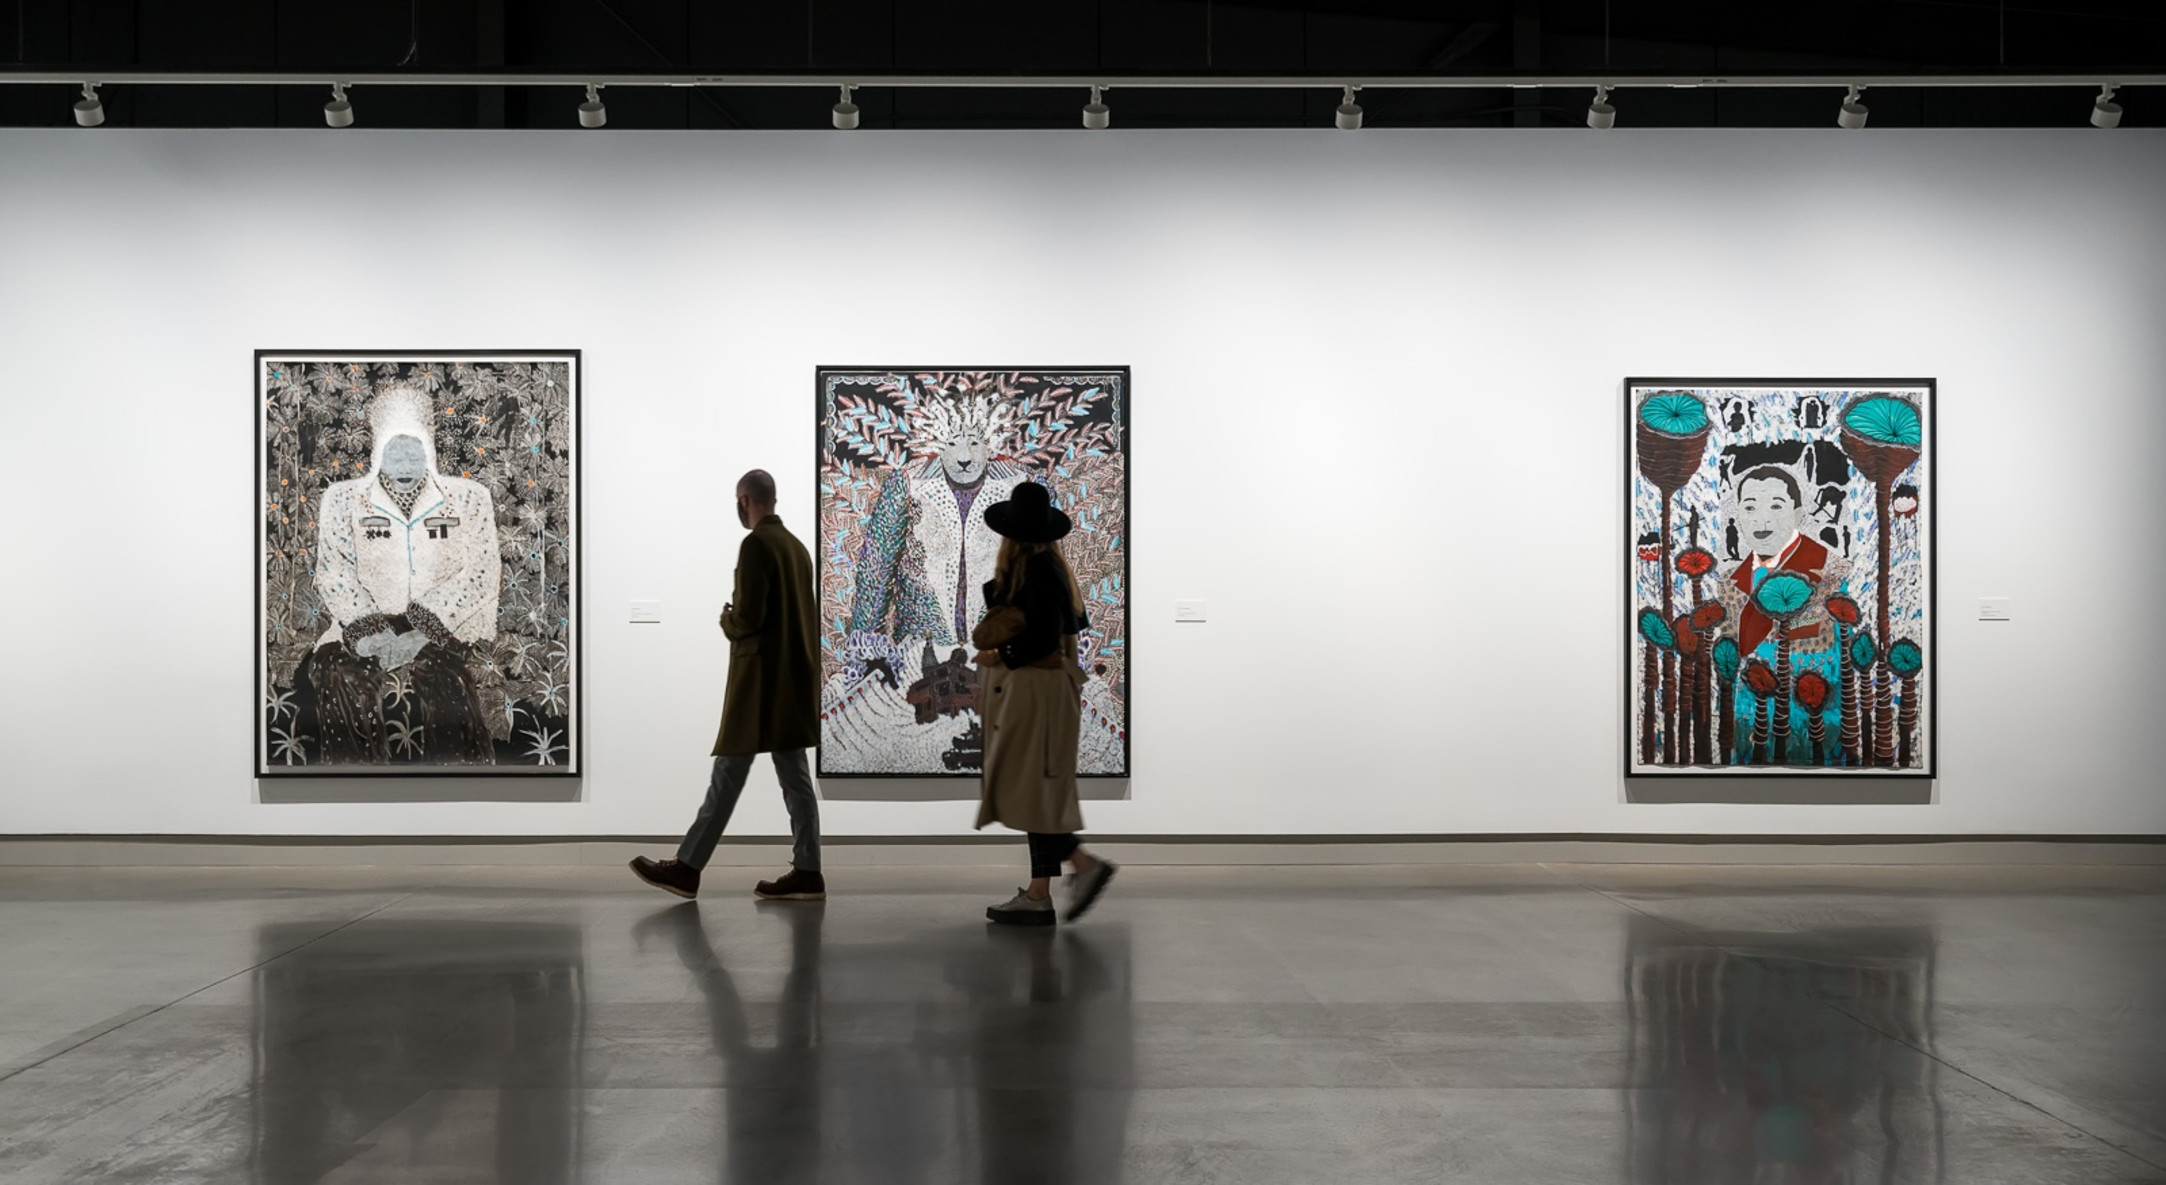 Omar Ba: Same Dream, Délit de Faciès 2 (2013), Dommages Collateraux (2014), Archive Nationale 2 (2017). Photography by Blaine Campbell, courtesy of Contemporary Calgary